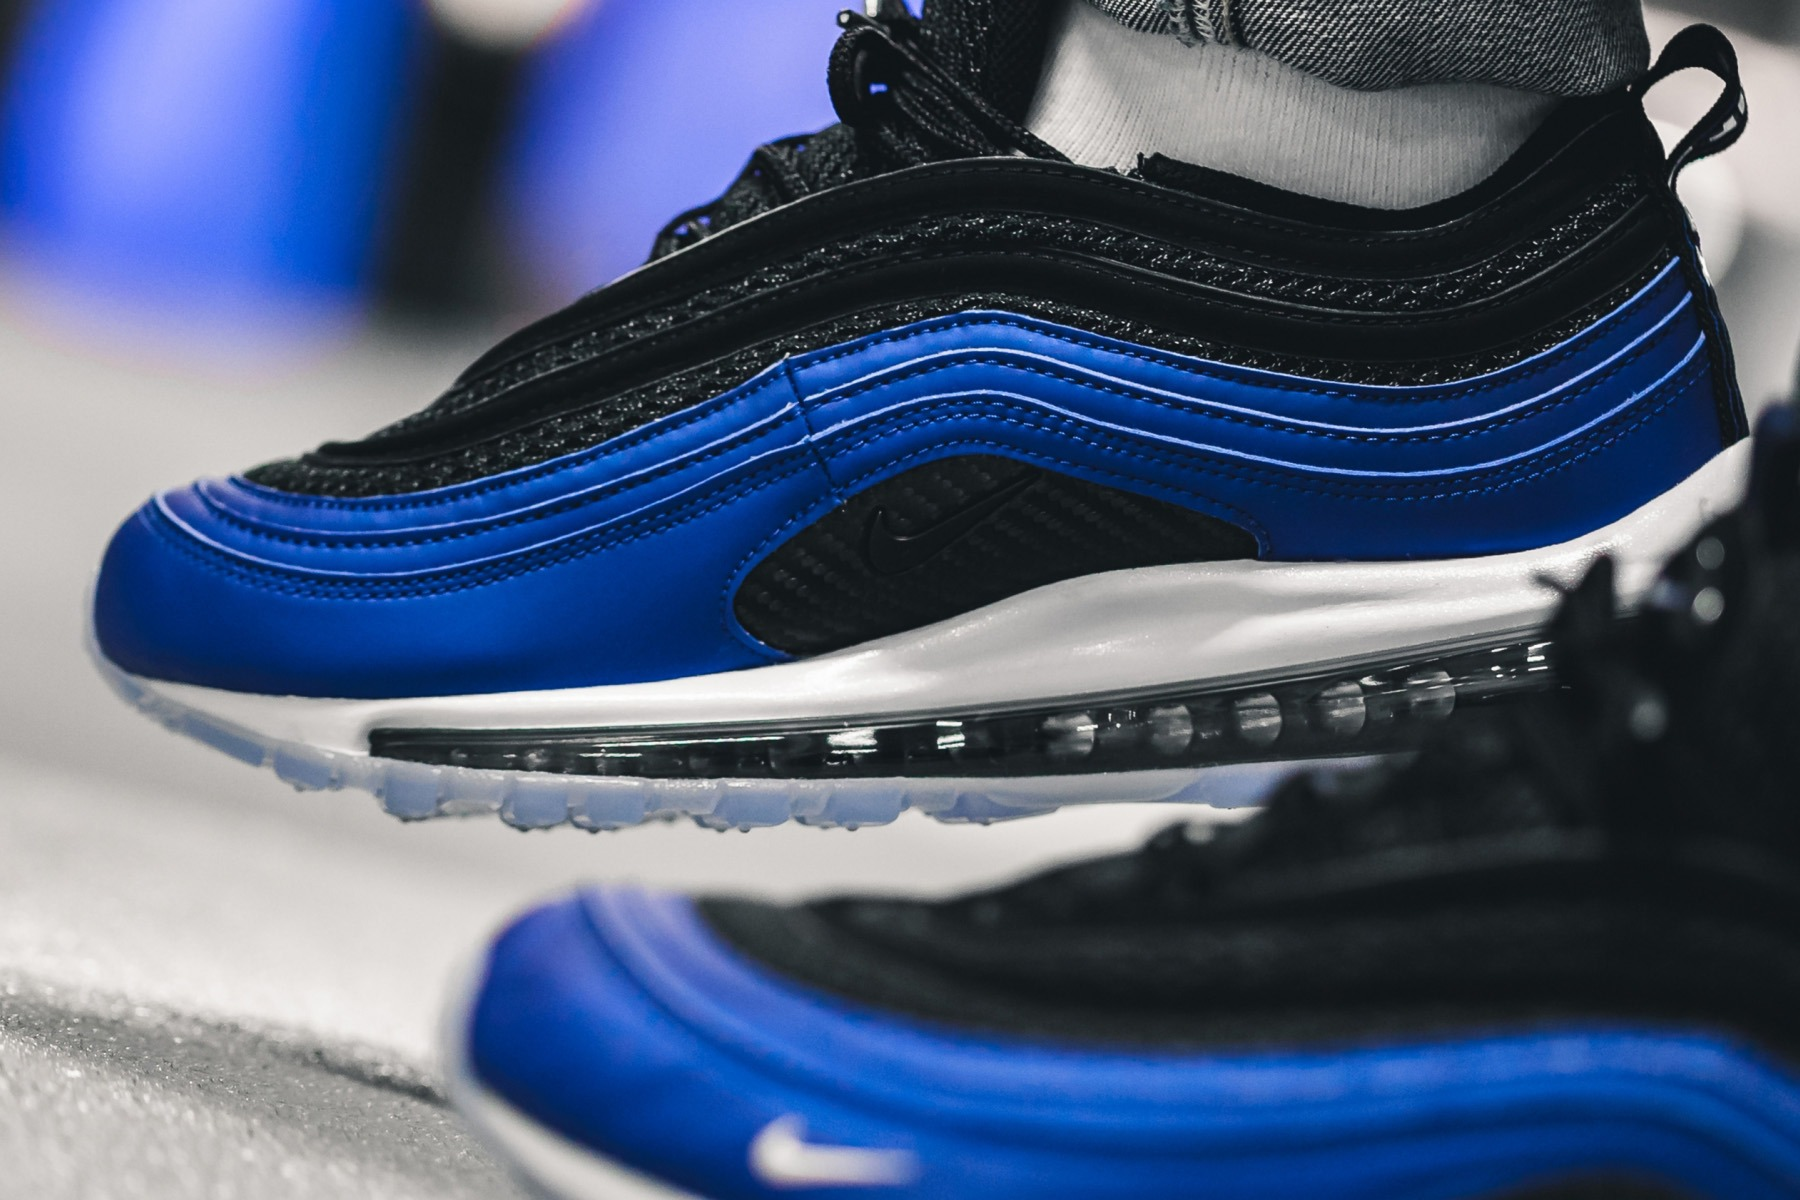 pretty nice 4e1d9 05192 Nike Sportswear is drawing from the OG Air Foamposite to construct its  latest Air Max 97. The referential design is achieved with an icy sole,  carbon fiber ...